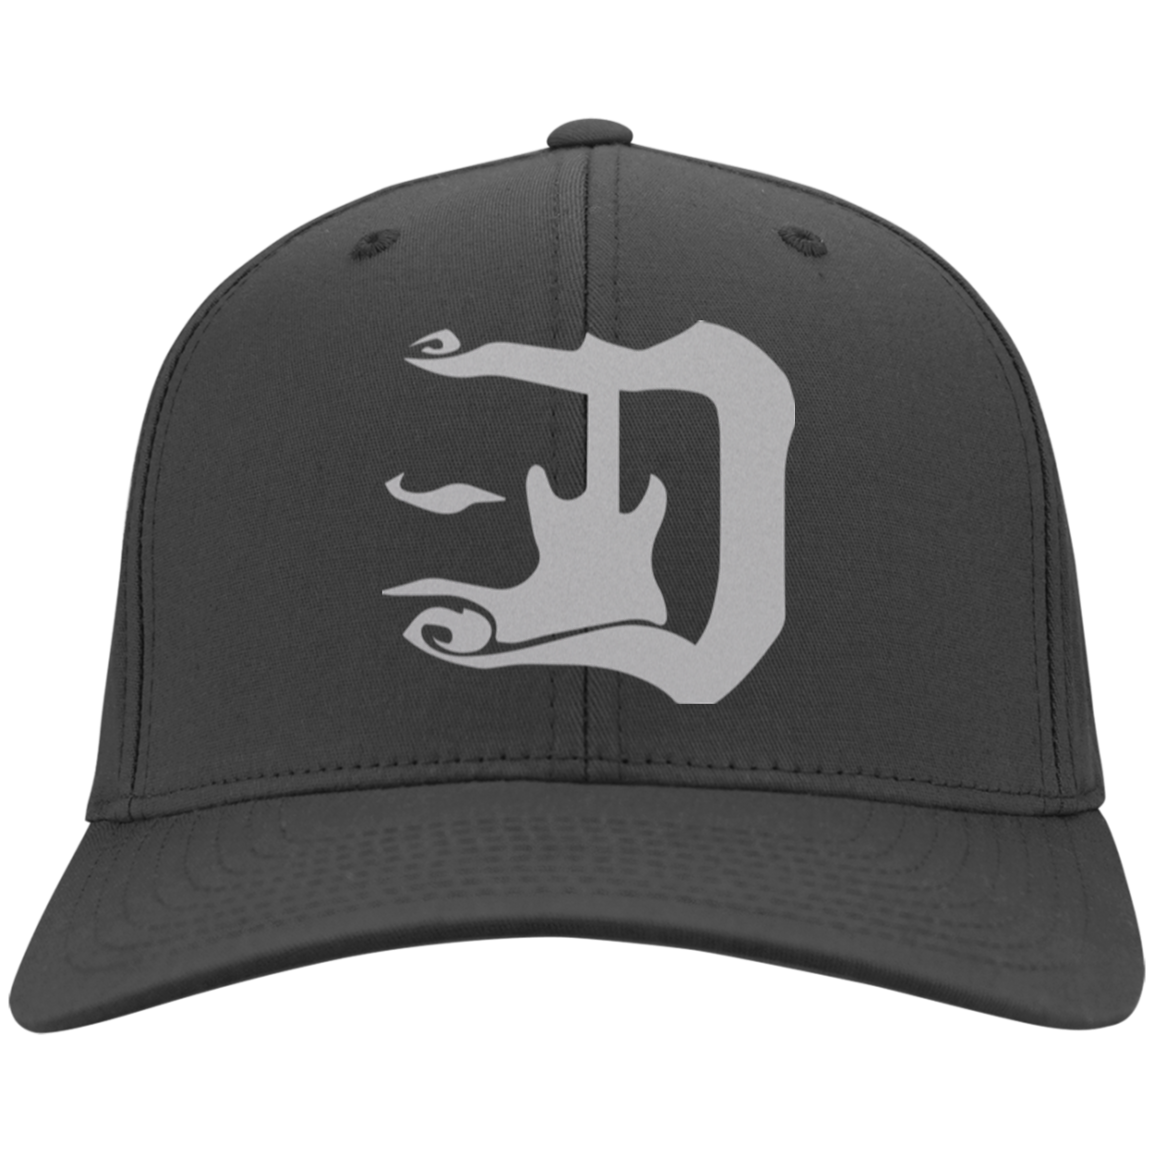 guitar d silver logo cap welcome to the d